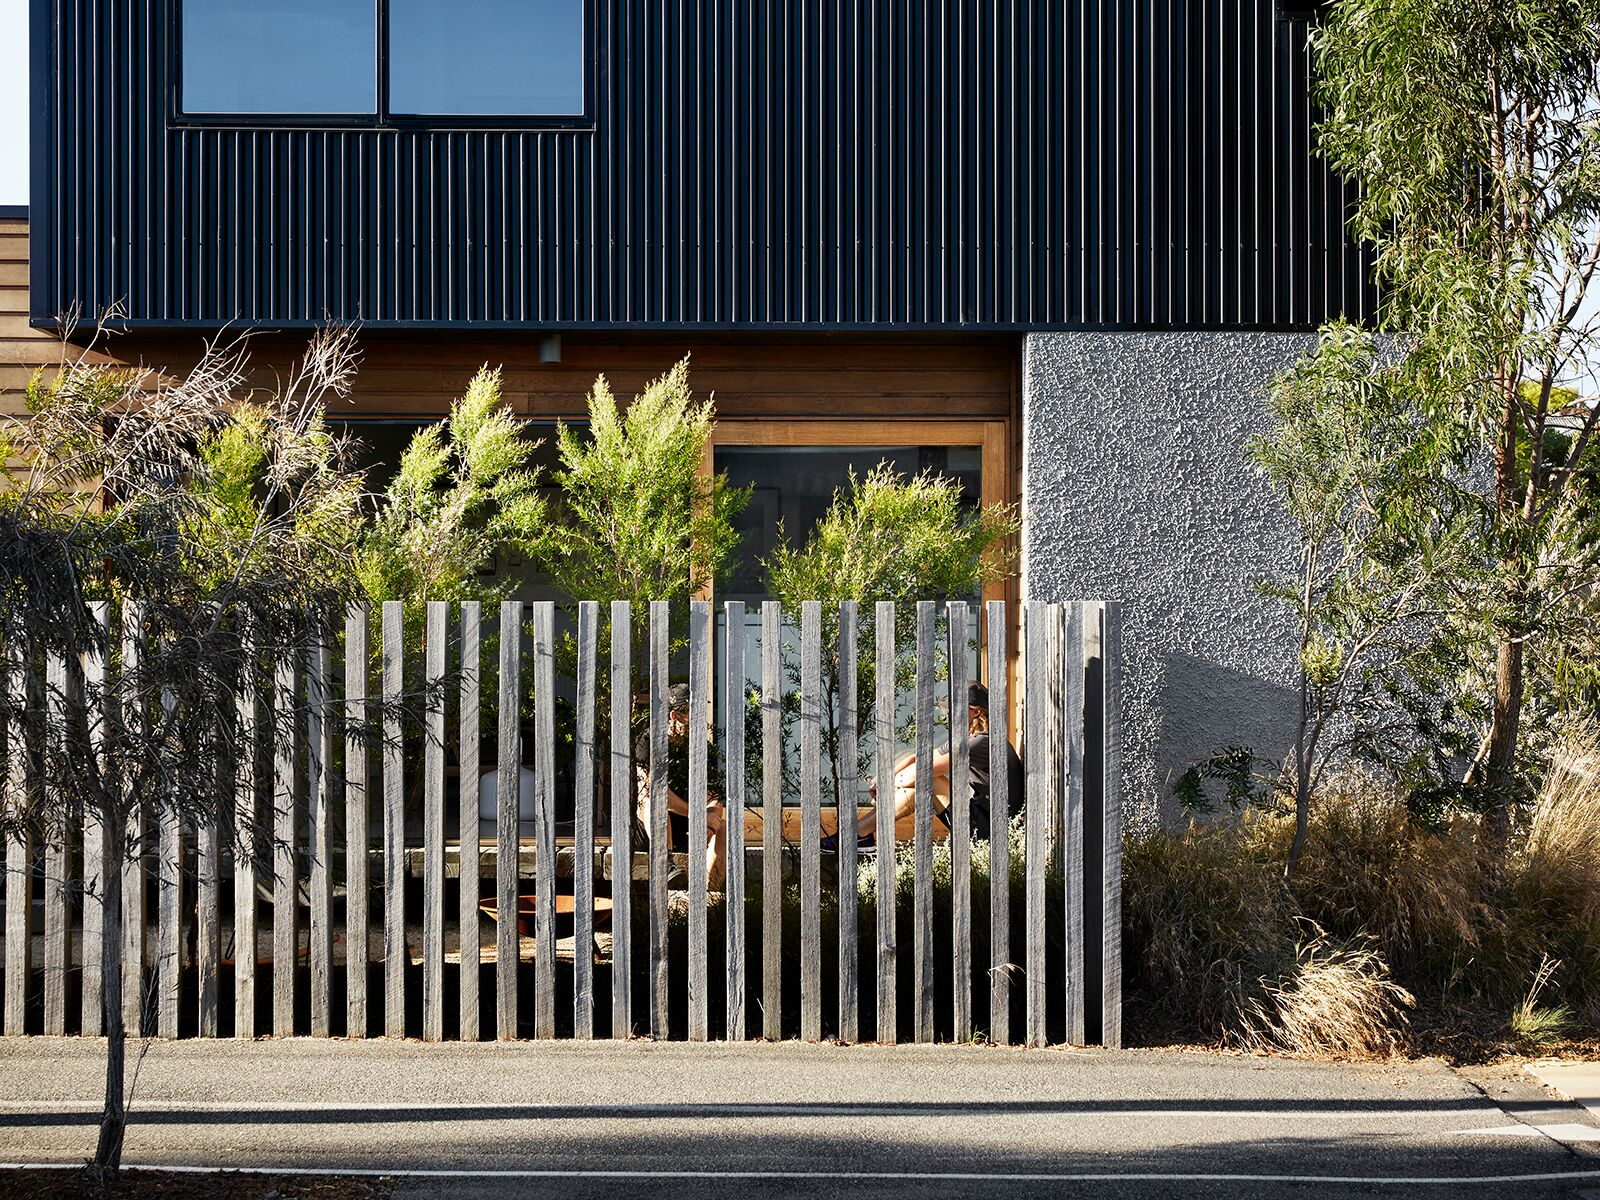 1 North Street by HIP V. HYPE - Liam Wallis - Australia Design & Architecture - Sustainable - Photographed by Tess Kelly - Image 8